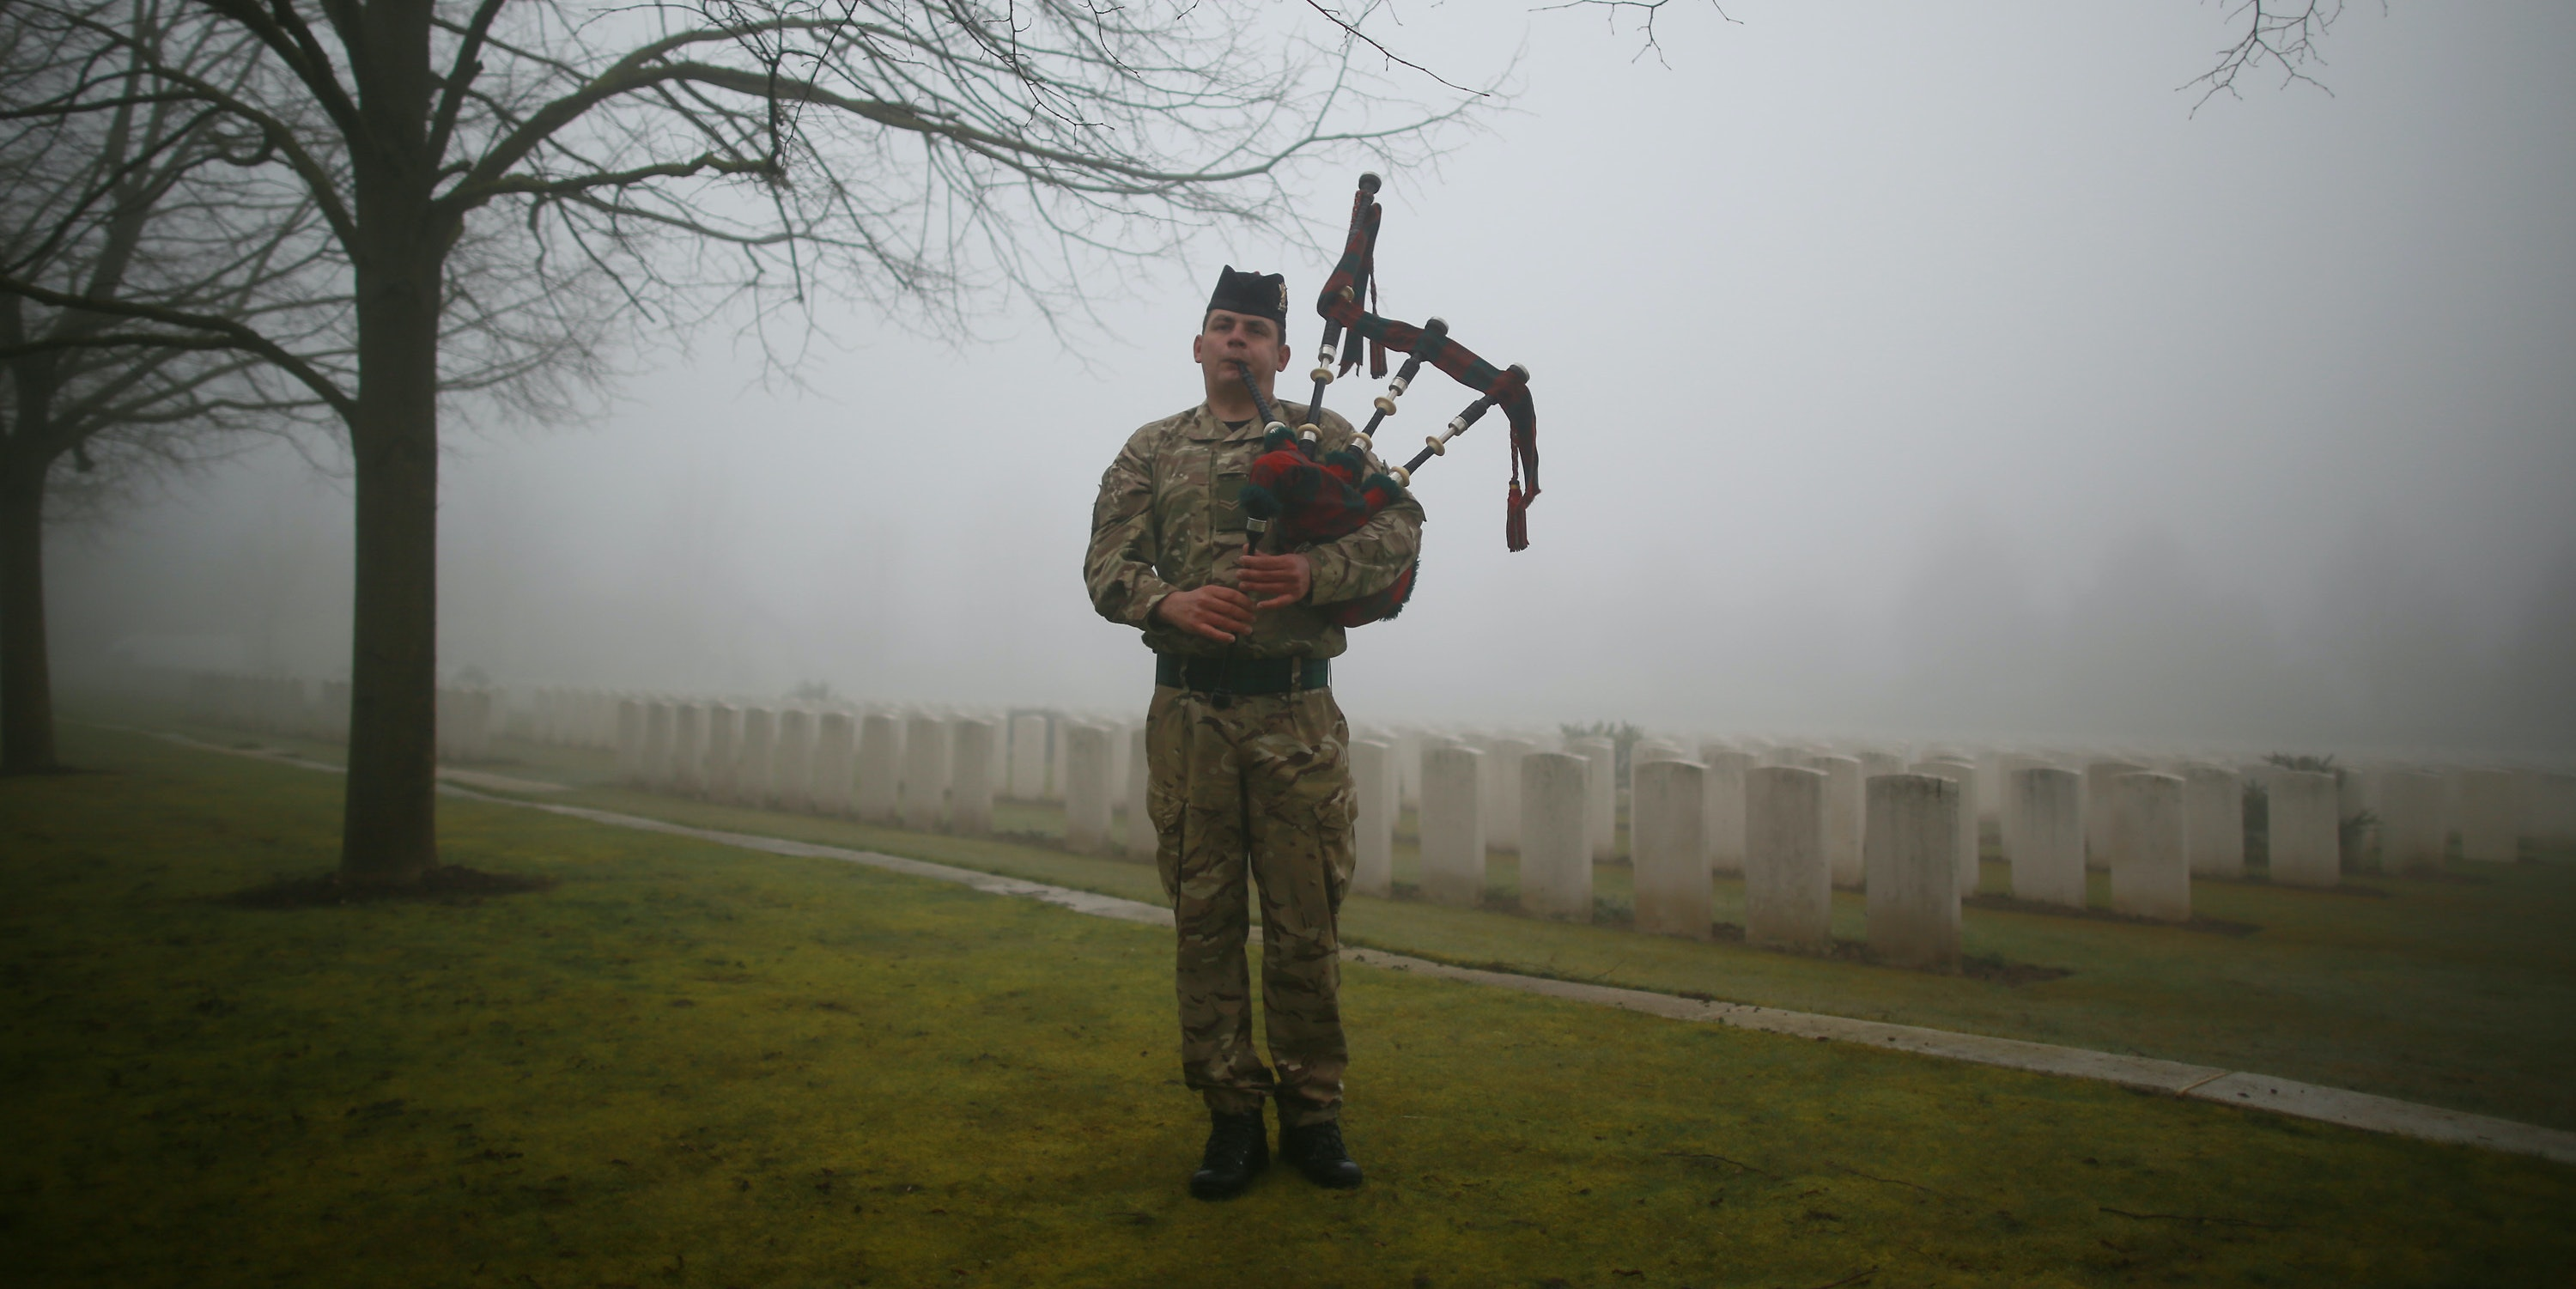 LOOS-EN-GOHELLE, FRANCE - MARCH 13:  Corporal Stuart Gillies of The 2nd Battalion The Royal Regiment of Scotland practices his bagpipes in Loos British Cemetery during a rehearsal for a re-burial ceremony on March 13, 2014 in Loos-en-Gohelle, France. Almost 100 years after they were killed in action in the World War One battle of Loos in 1915, twenty British soldiers will be re-interred in the Commonwealth War Graves Commission Loos British Cemetery in Northern France. Private William McAleer, from the 7th Battalion the Royal Scottish Fusiliers, was found with his identity disc, but others found with him remain unidentified and will be buried as soldiers Known unto God.  (Photo by Peter Macdiarmid/Getty Images)